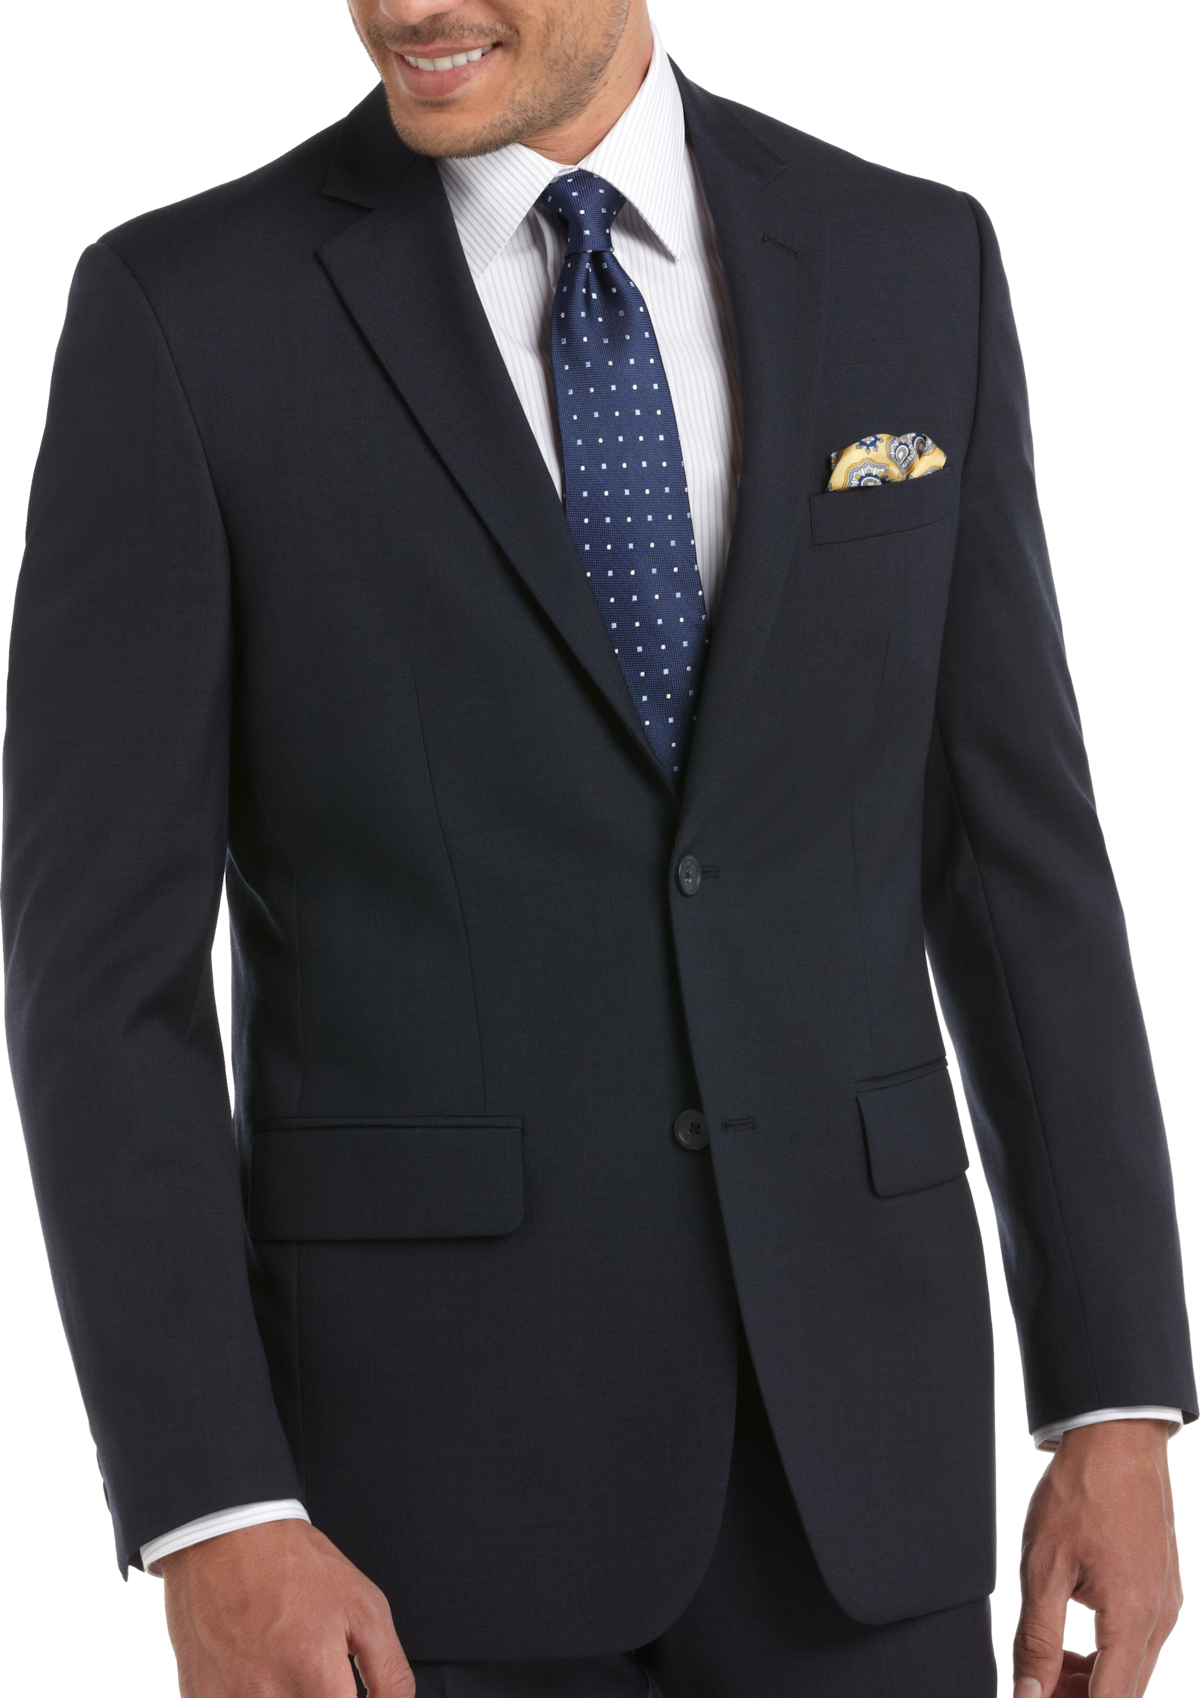 how to get a stain out of a suit jacket